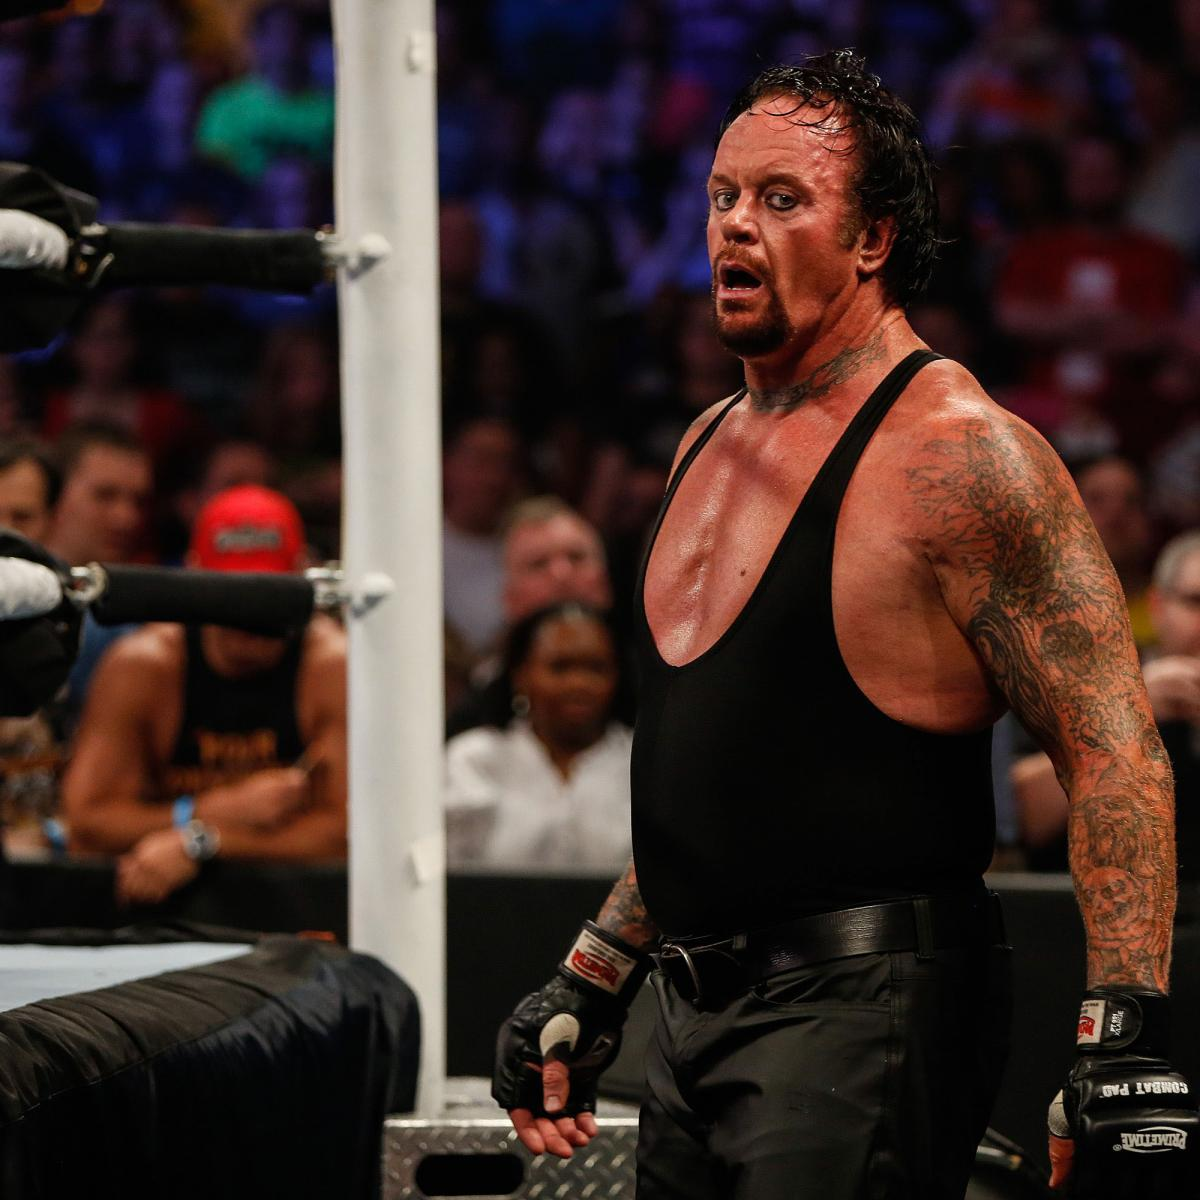 Undertaker Appears To Retire After Wwe Wrestlemania 33